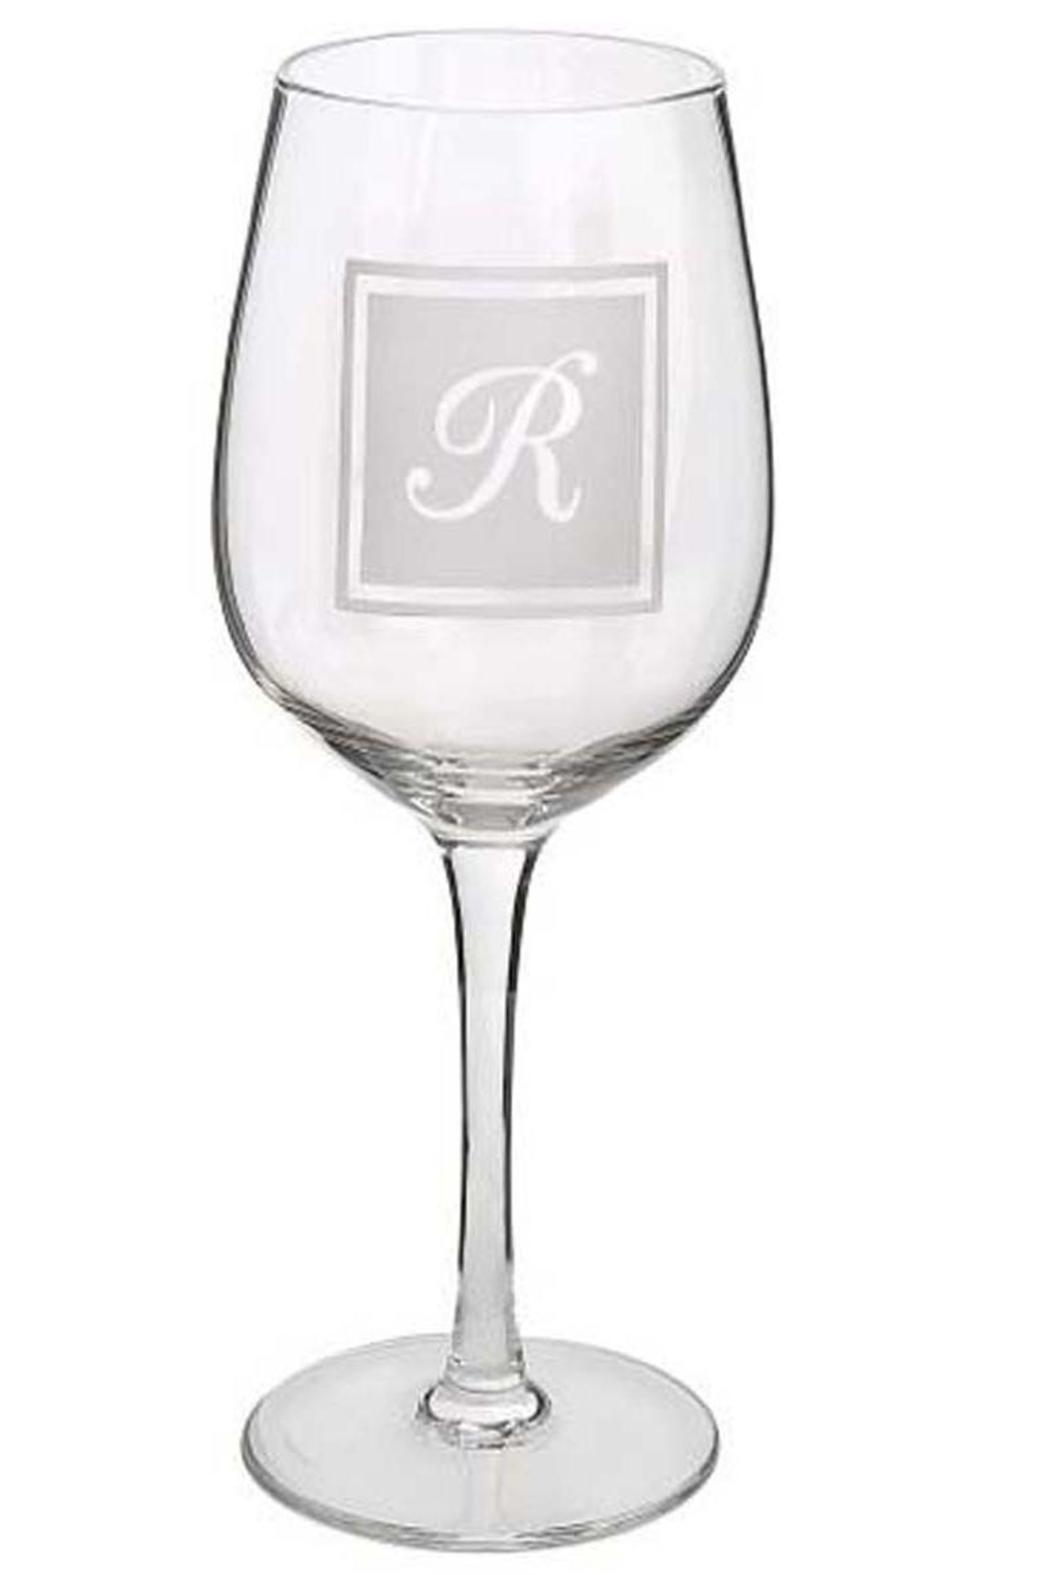 Ganz Initial Wine-Glass R - Main Image